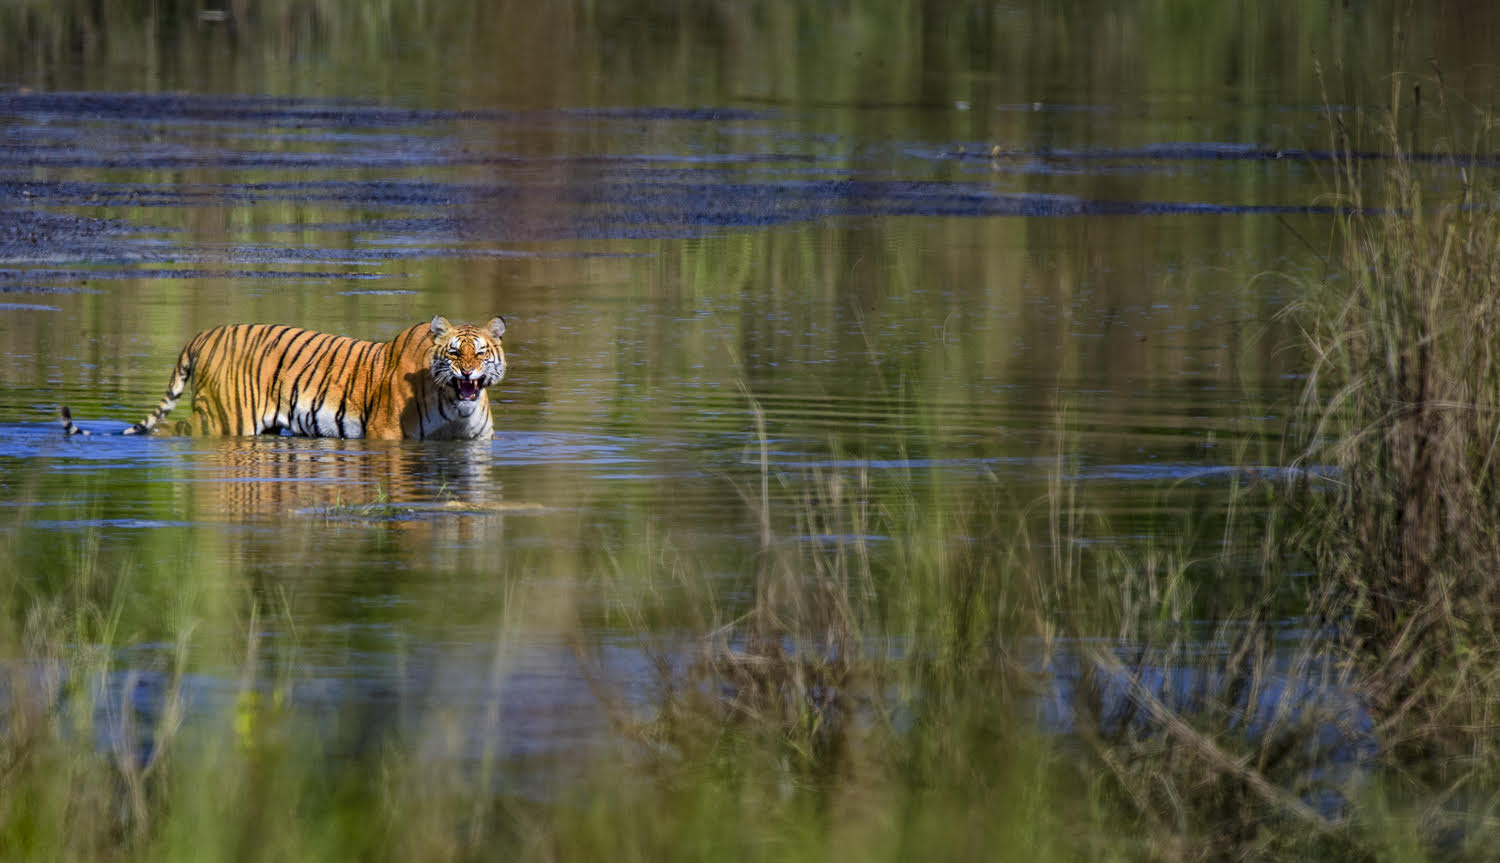 The elusive tiger - Courtesy of Fanny Lai and Bjorn Olesen